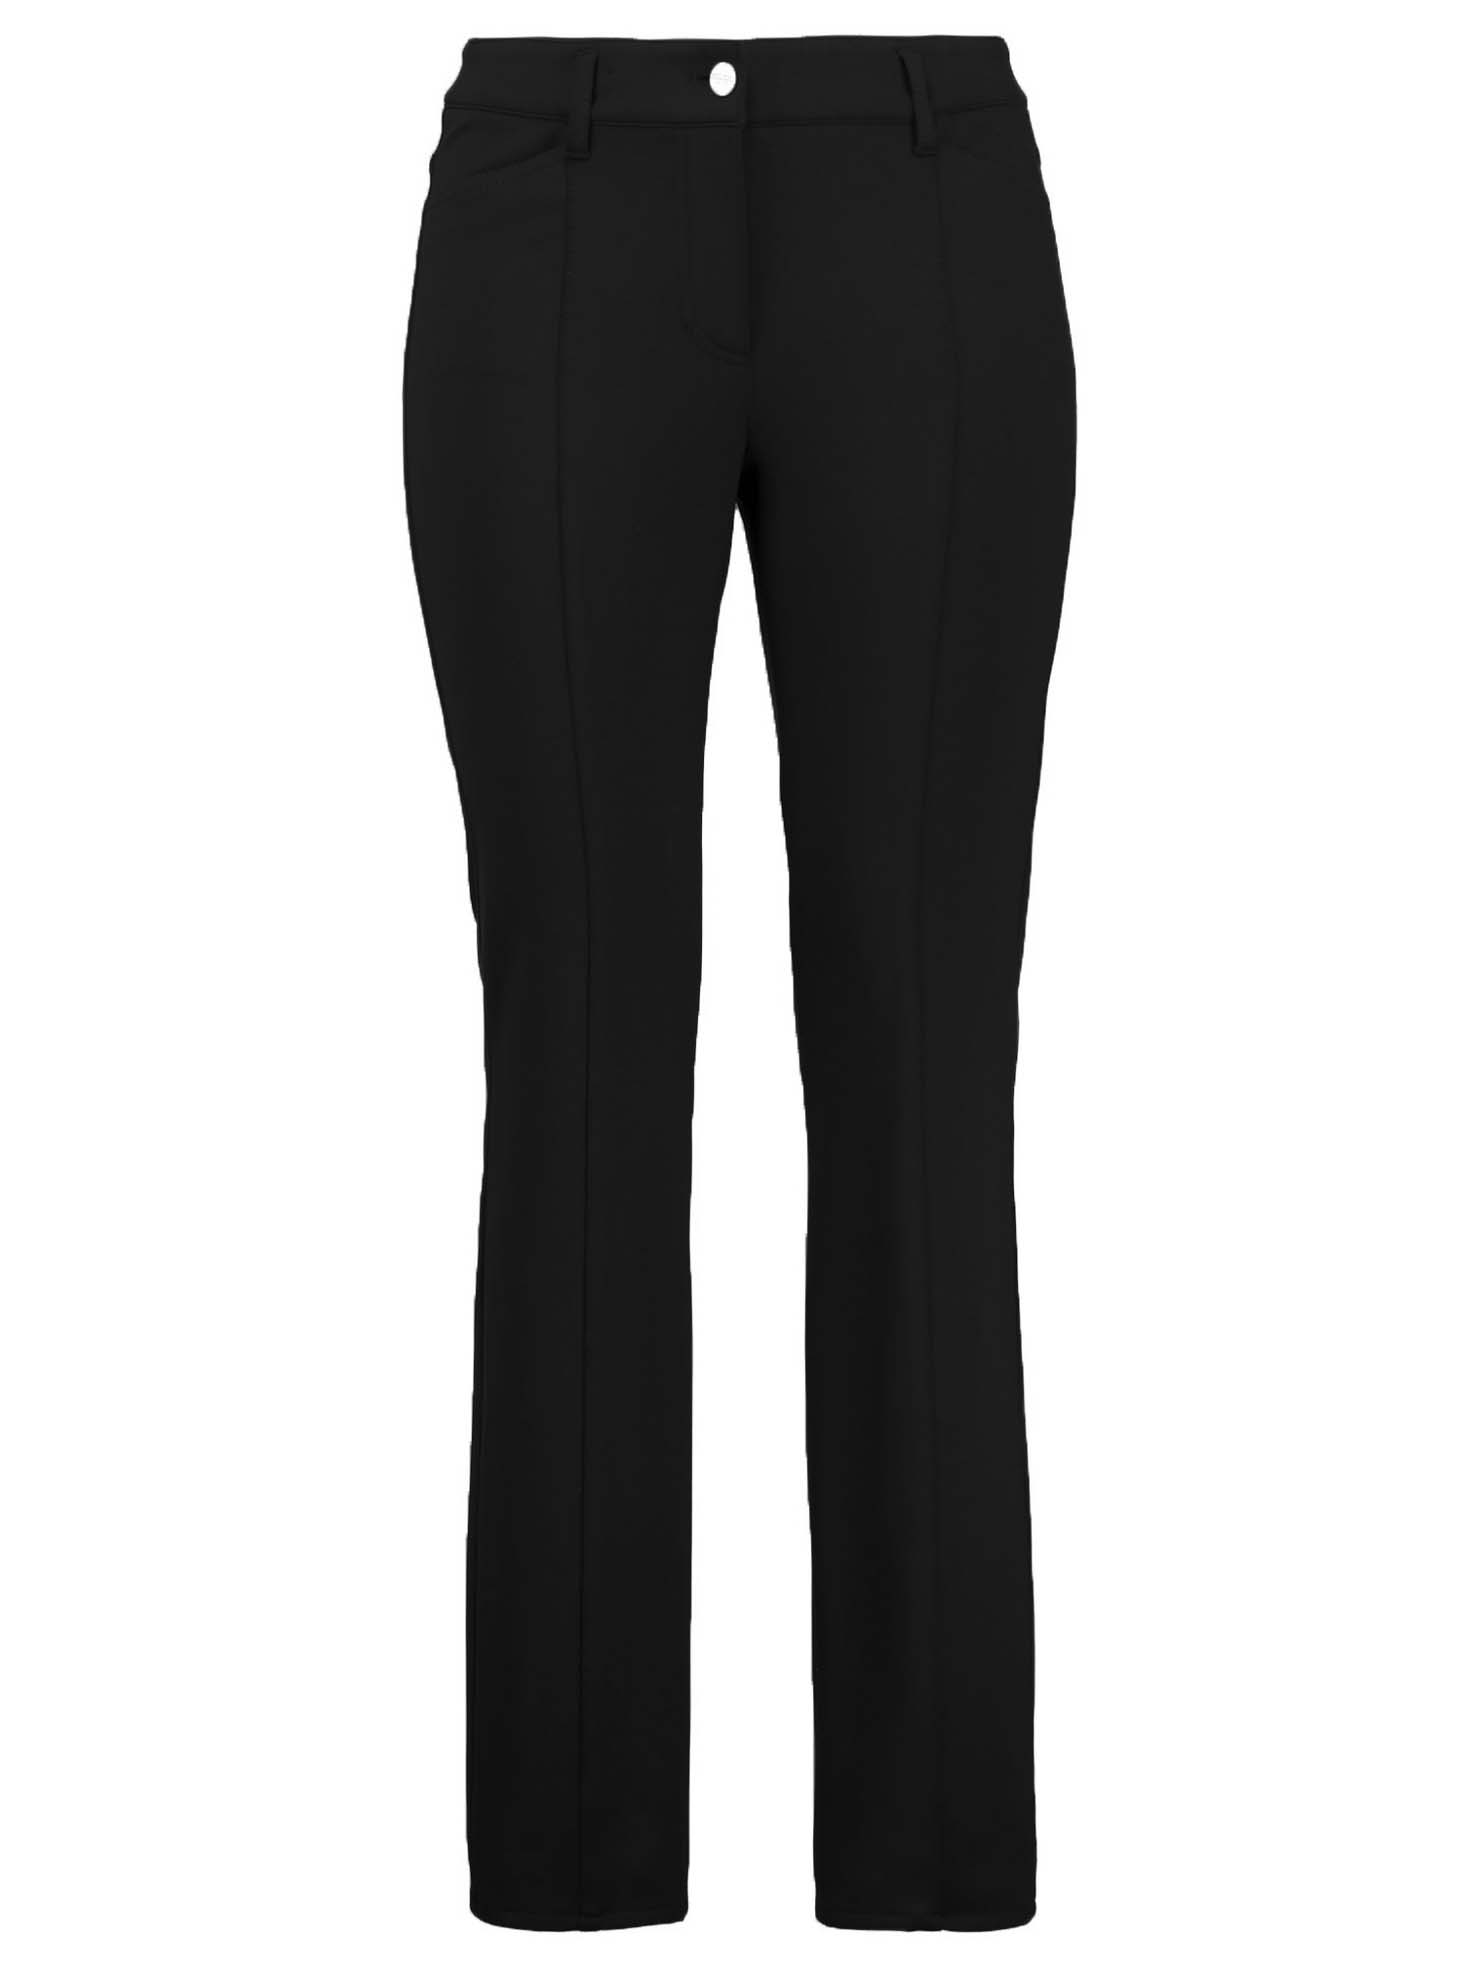 Gerry Weber Edition Gerry Weber Edition Pantalon 92229-67802